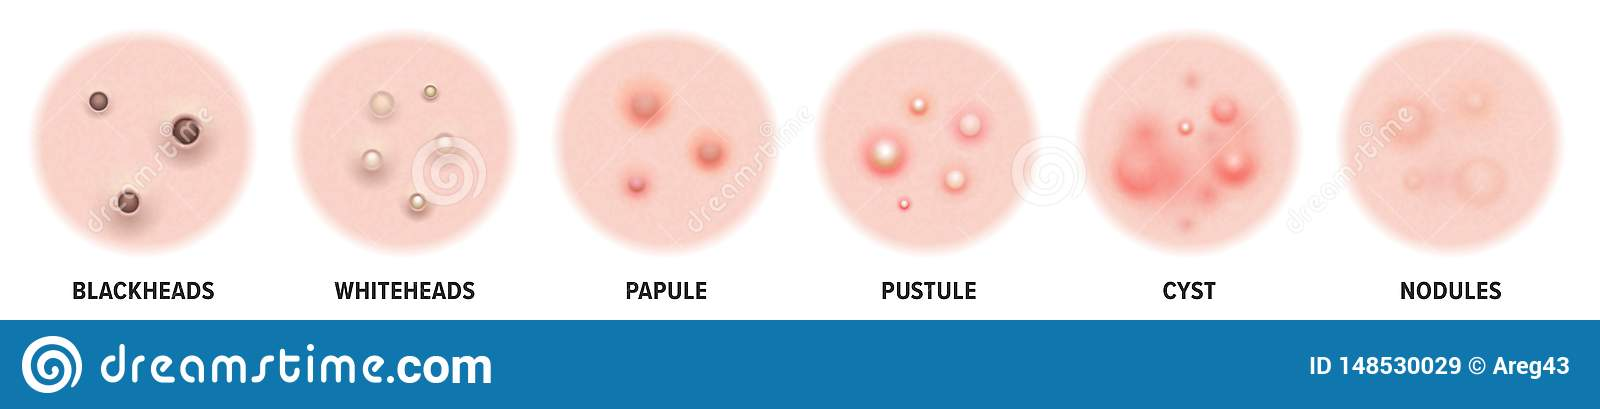 Acne types, skin pimples blackheads and face comedones. Vector icons of skin acne pimples, cosmetology skincare problems